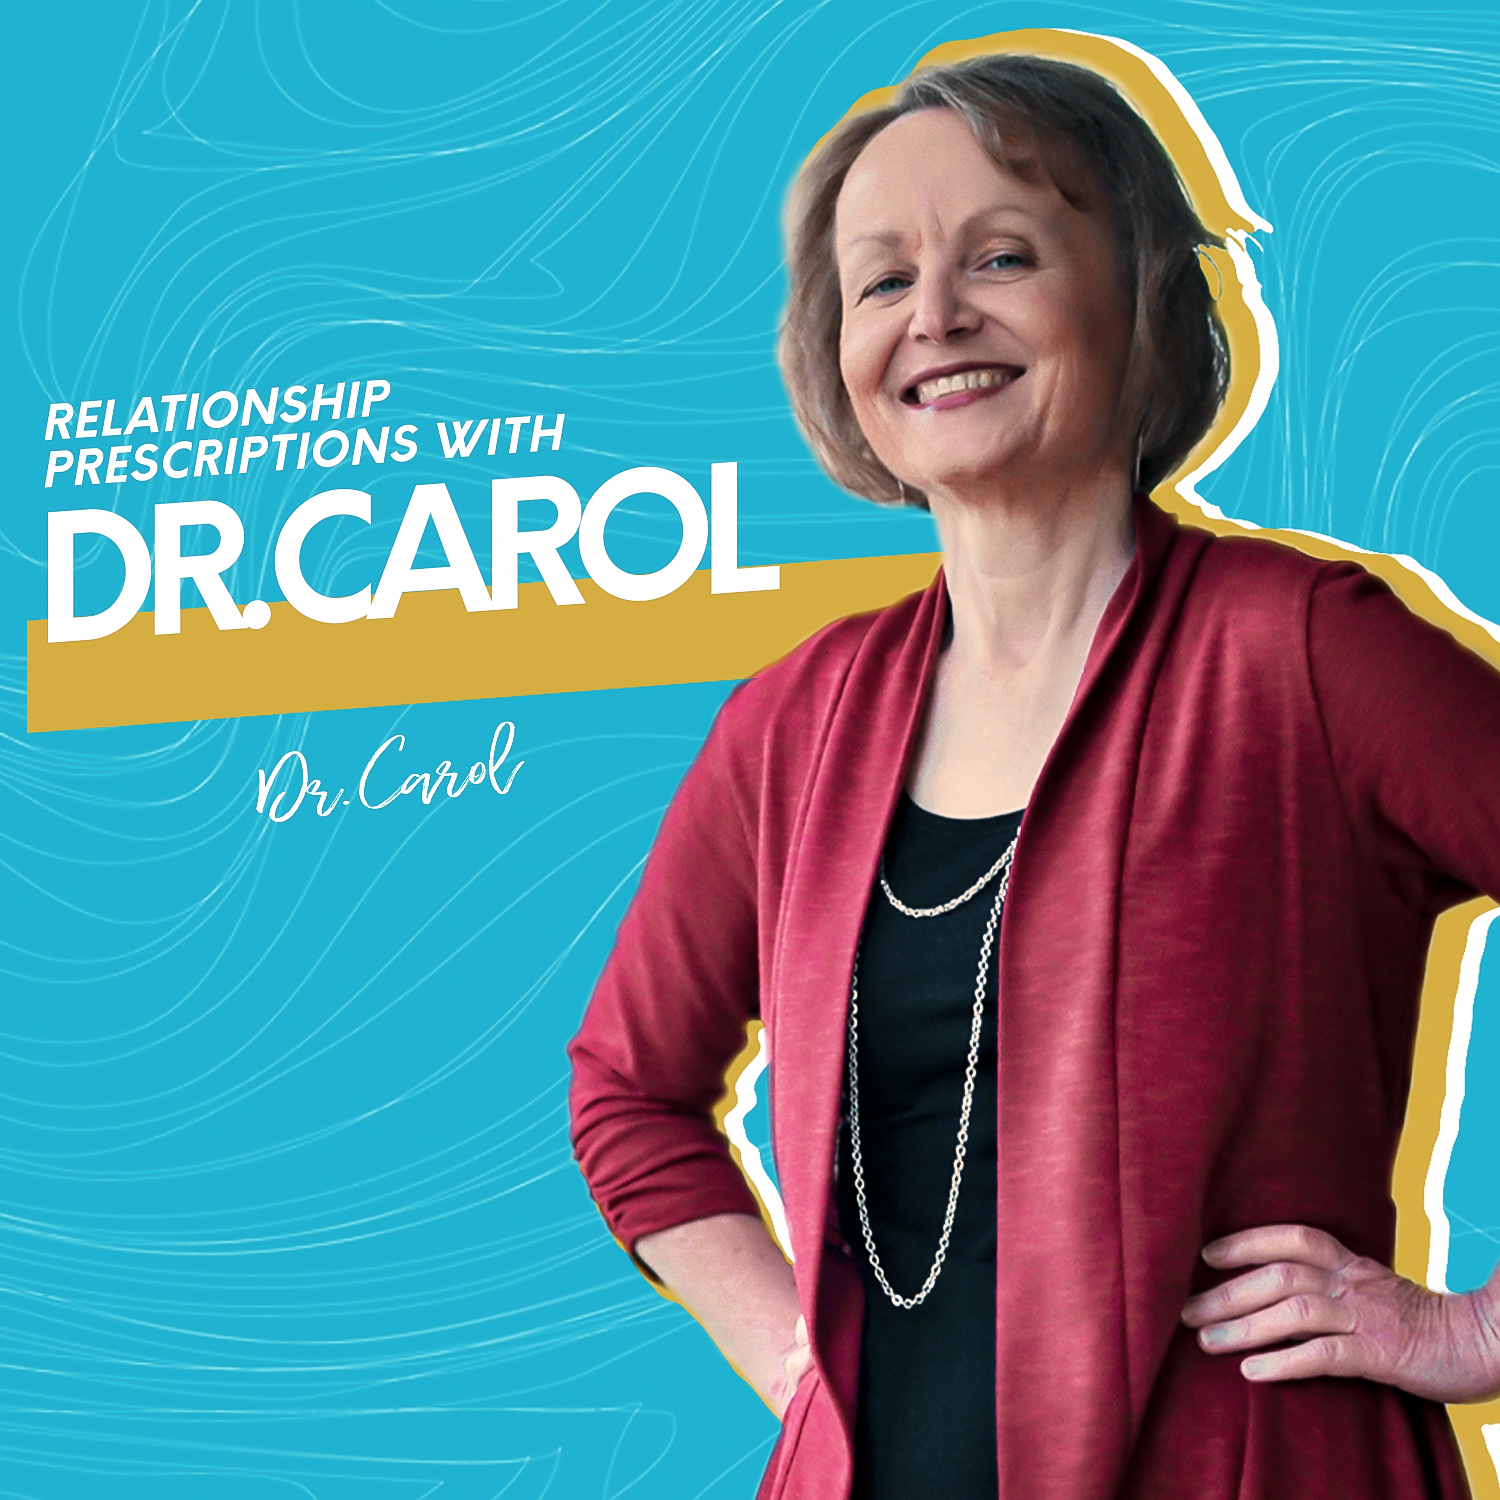 Relationship Prescriptions with Dr. Carol - Are You Winning at Life or Losing:? Lessons from a NCAA Basketball Coach